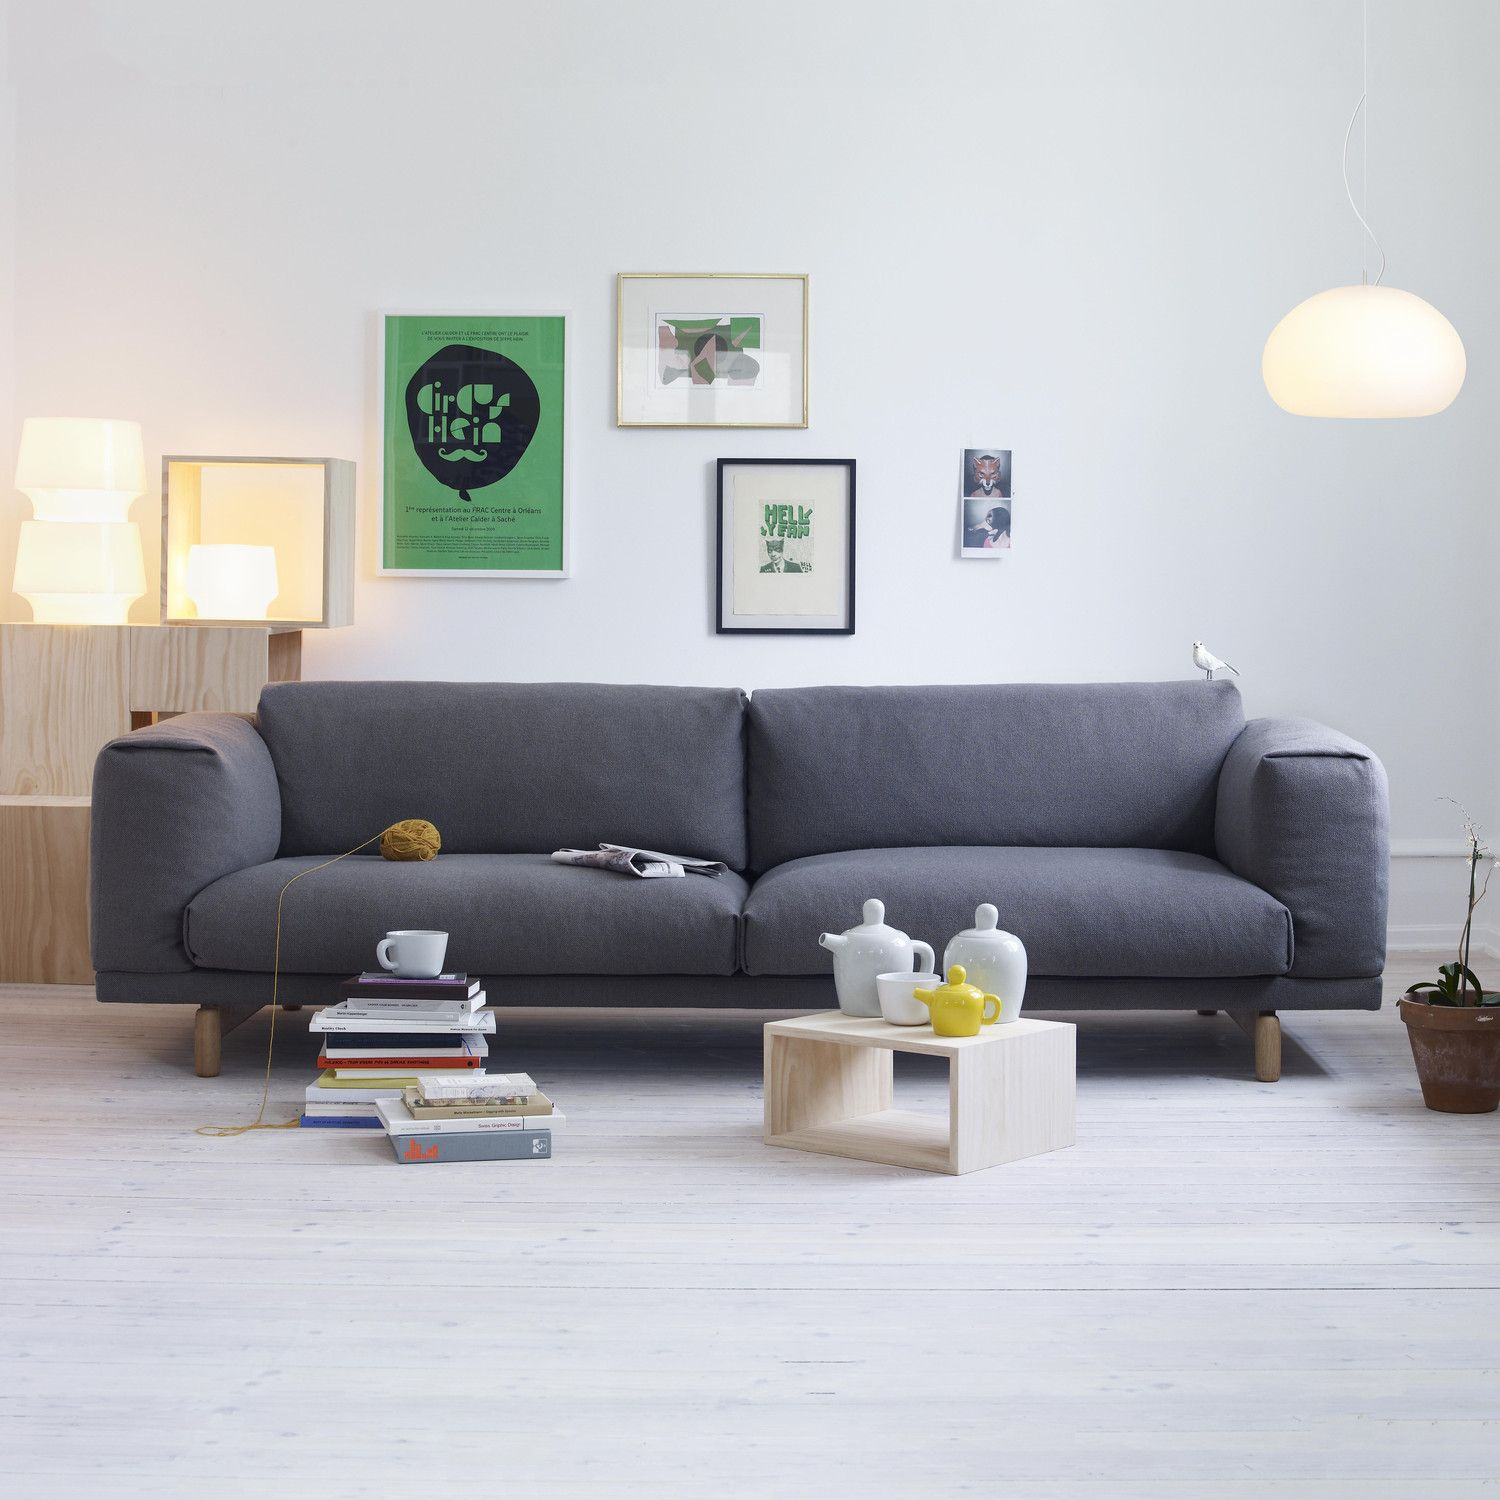 rest 3 seater sofa ++ anderssen & voll